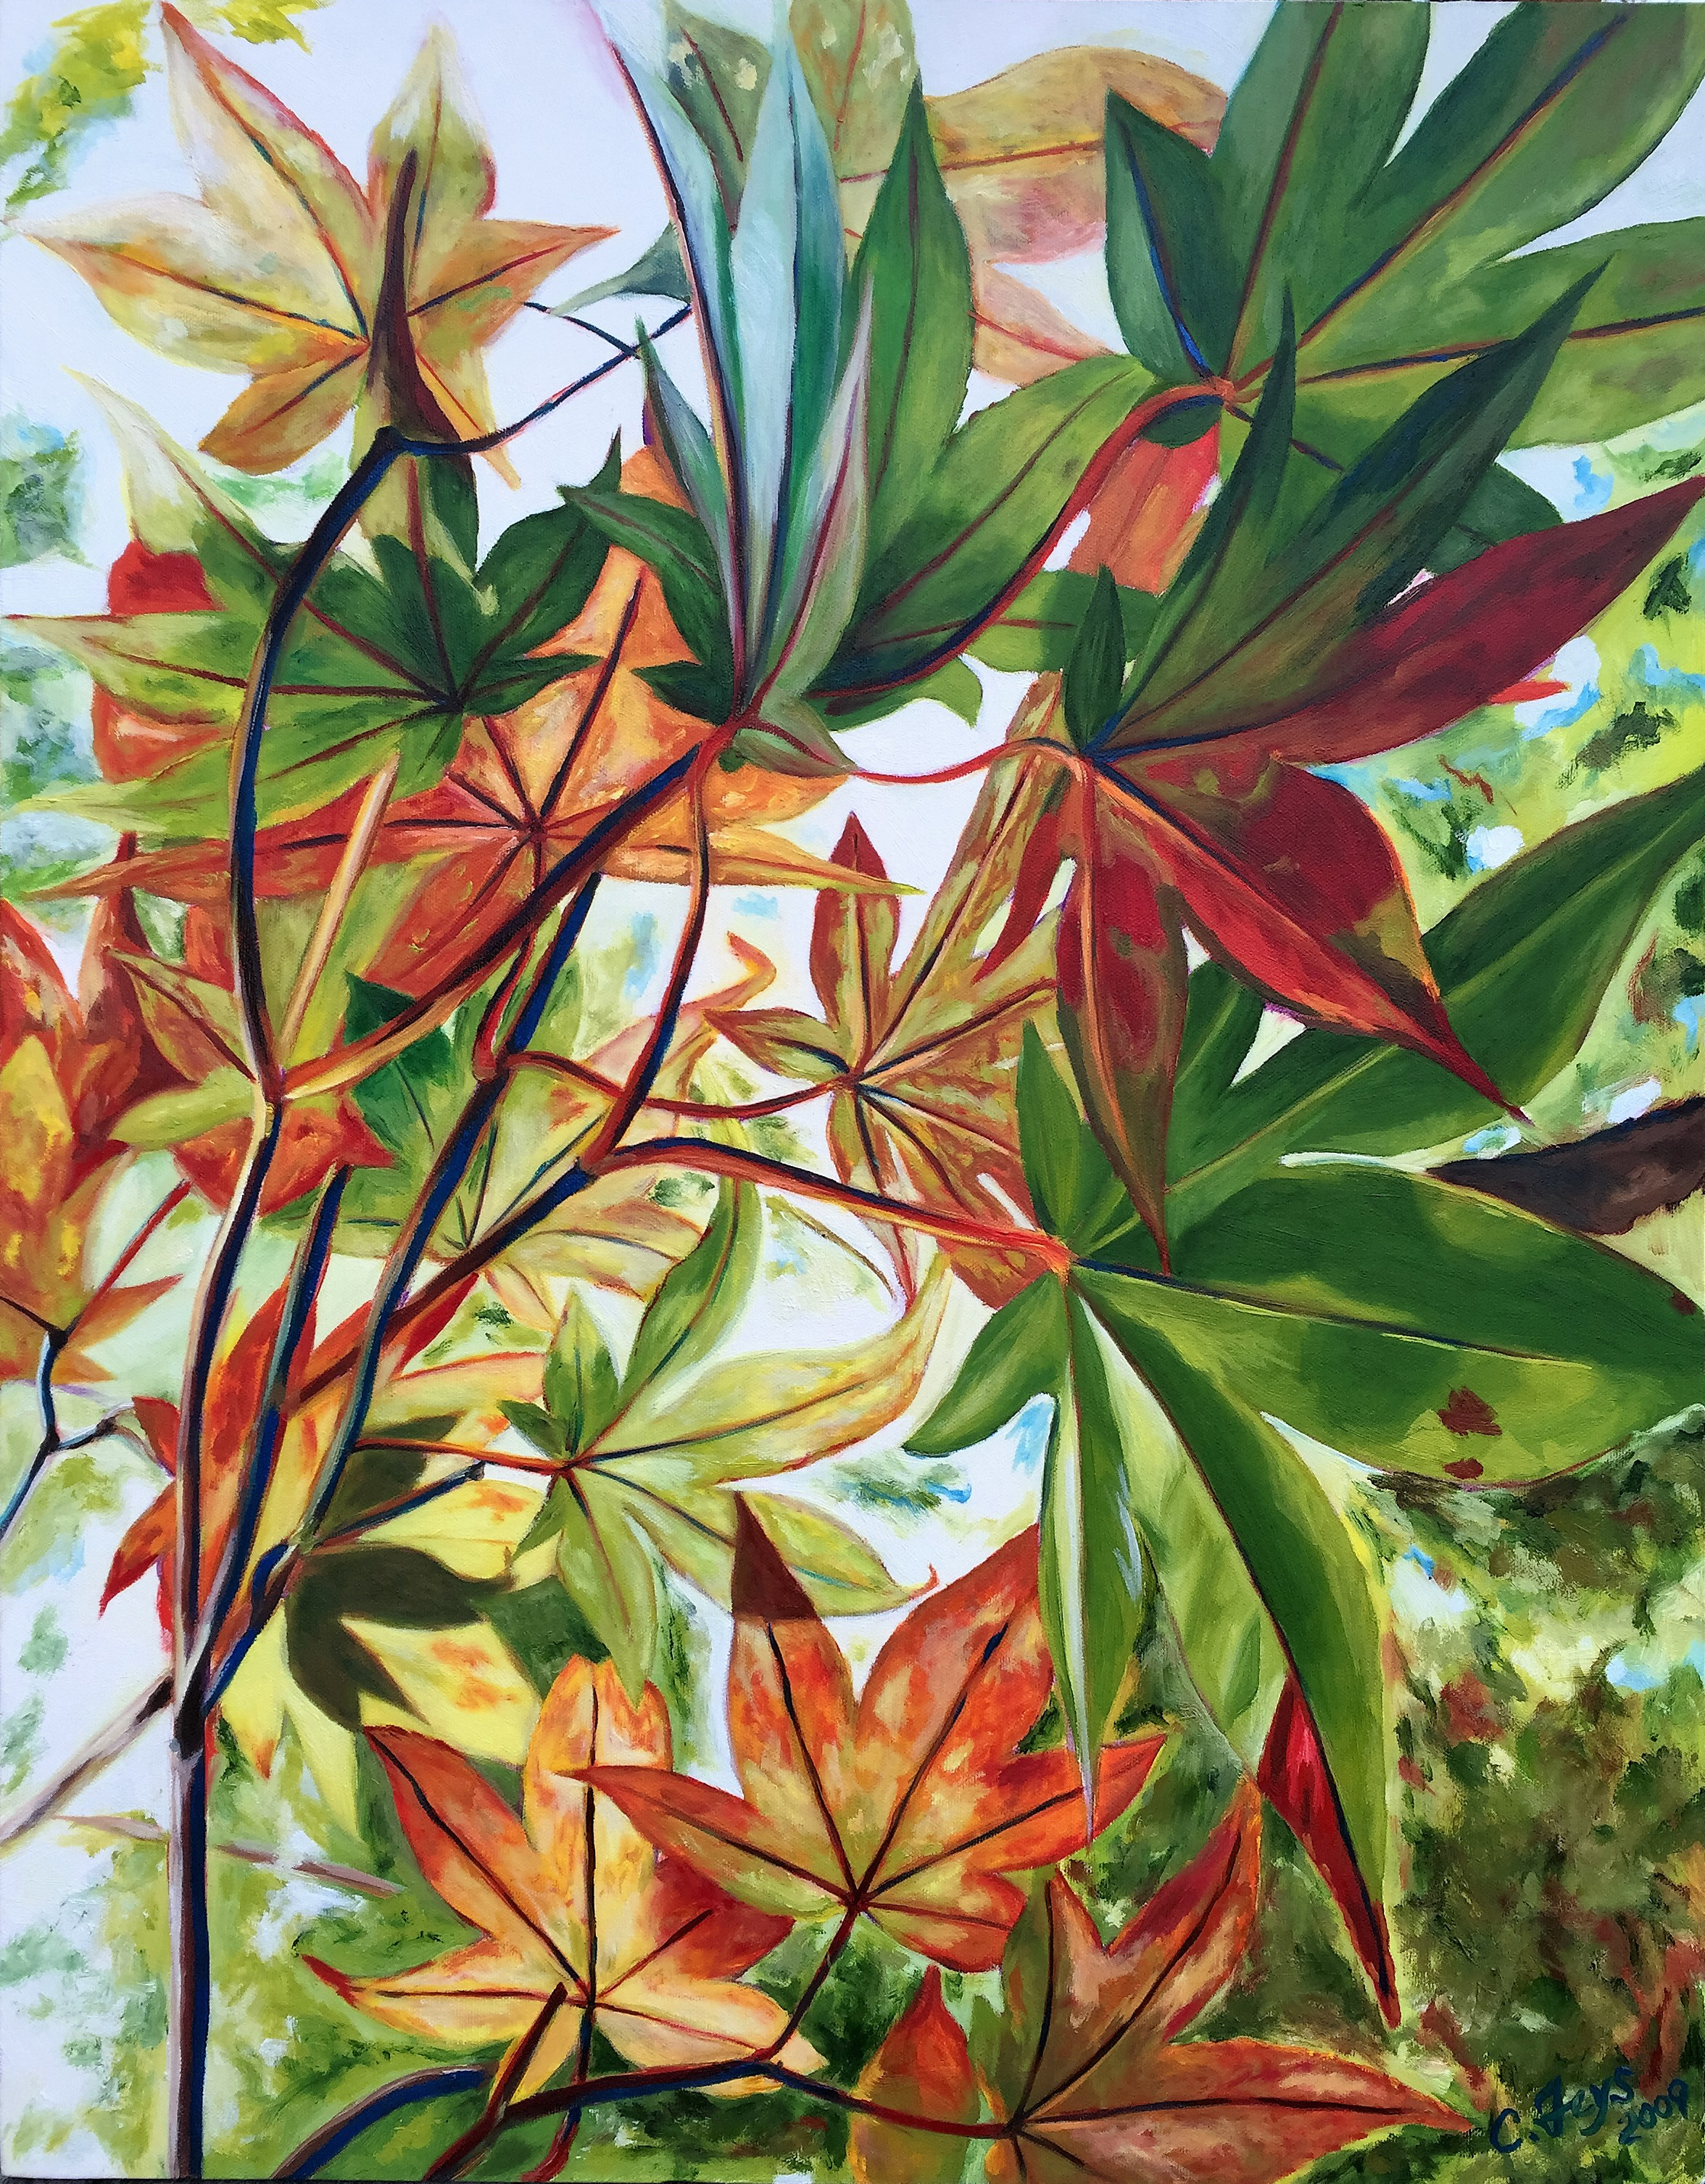 Maple Leave Study 2, 2009